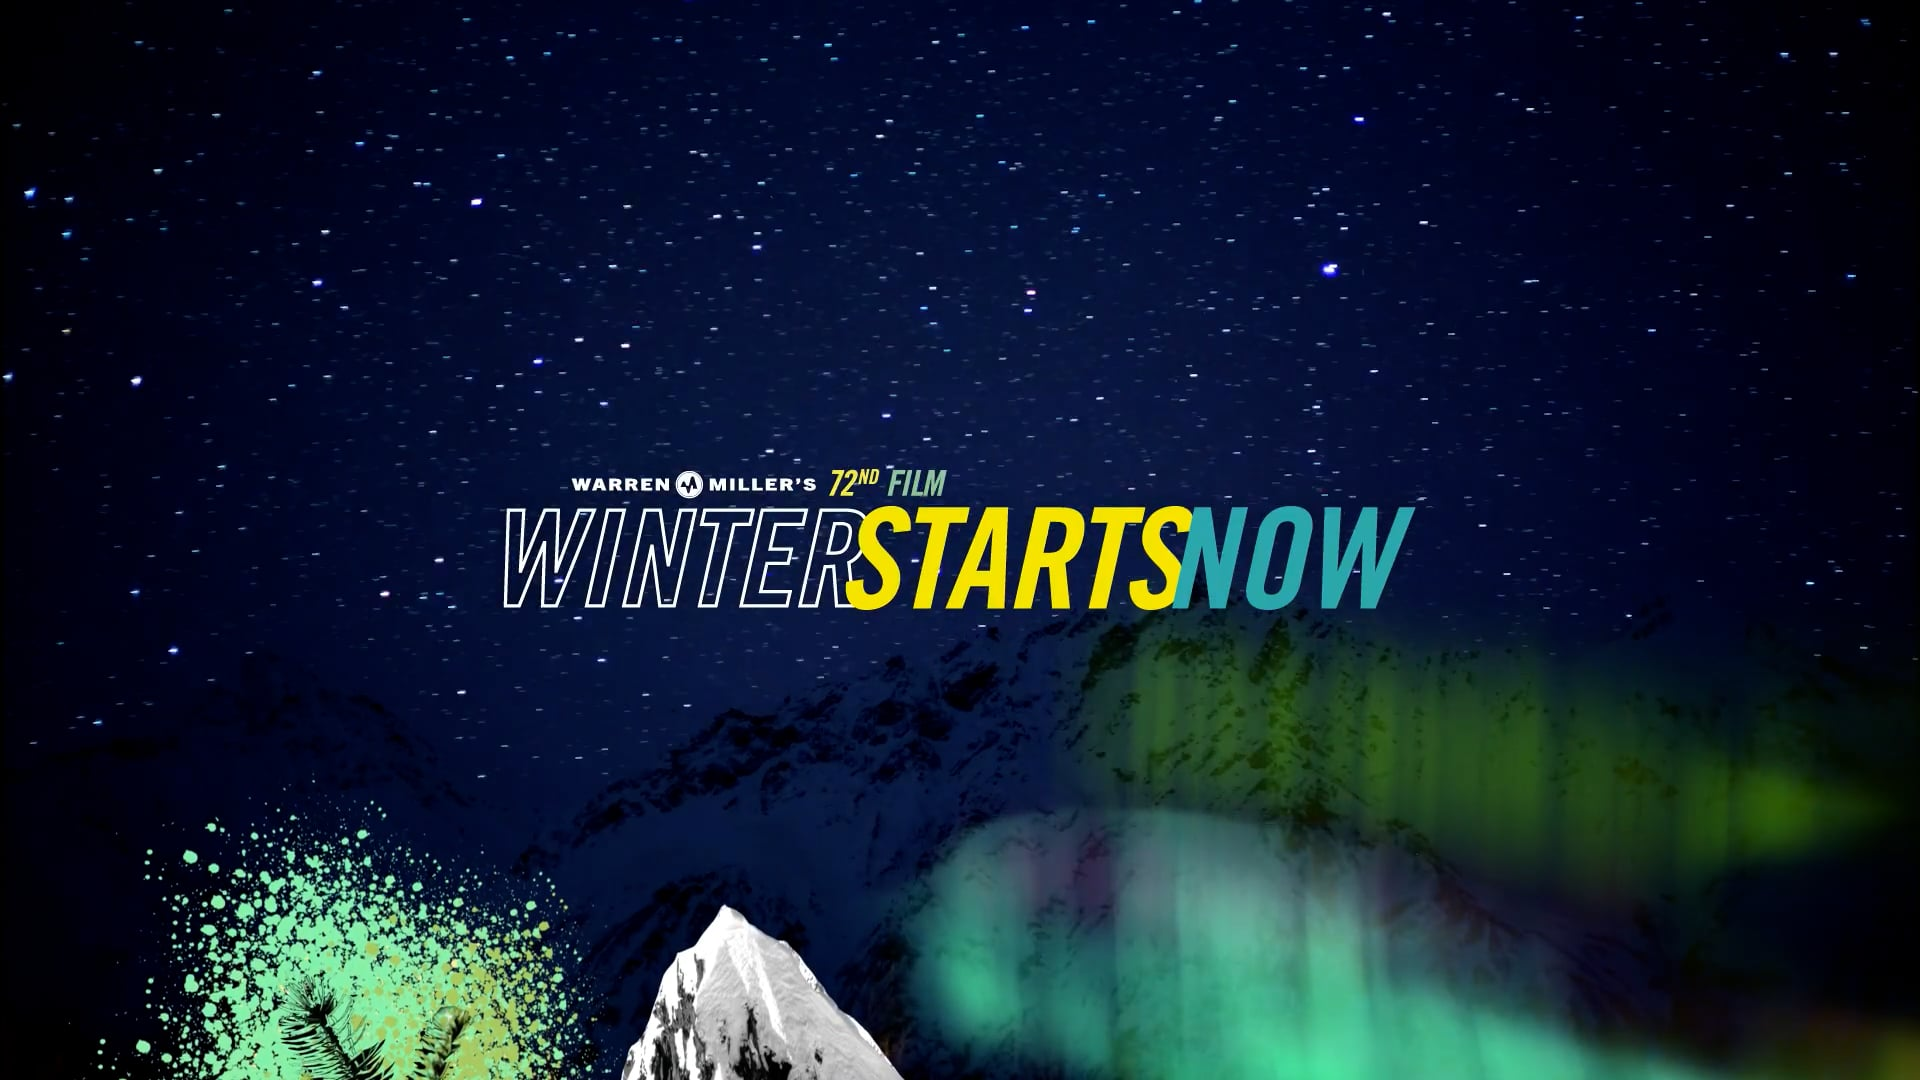 OFFICIAL TRAILER: Winter Starts Now